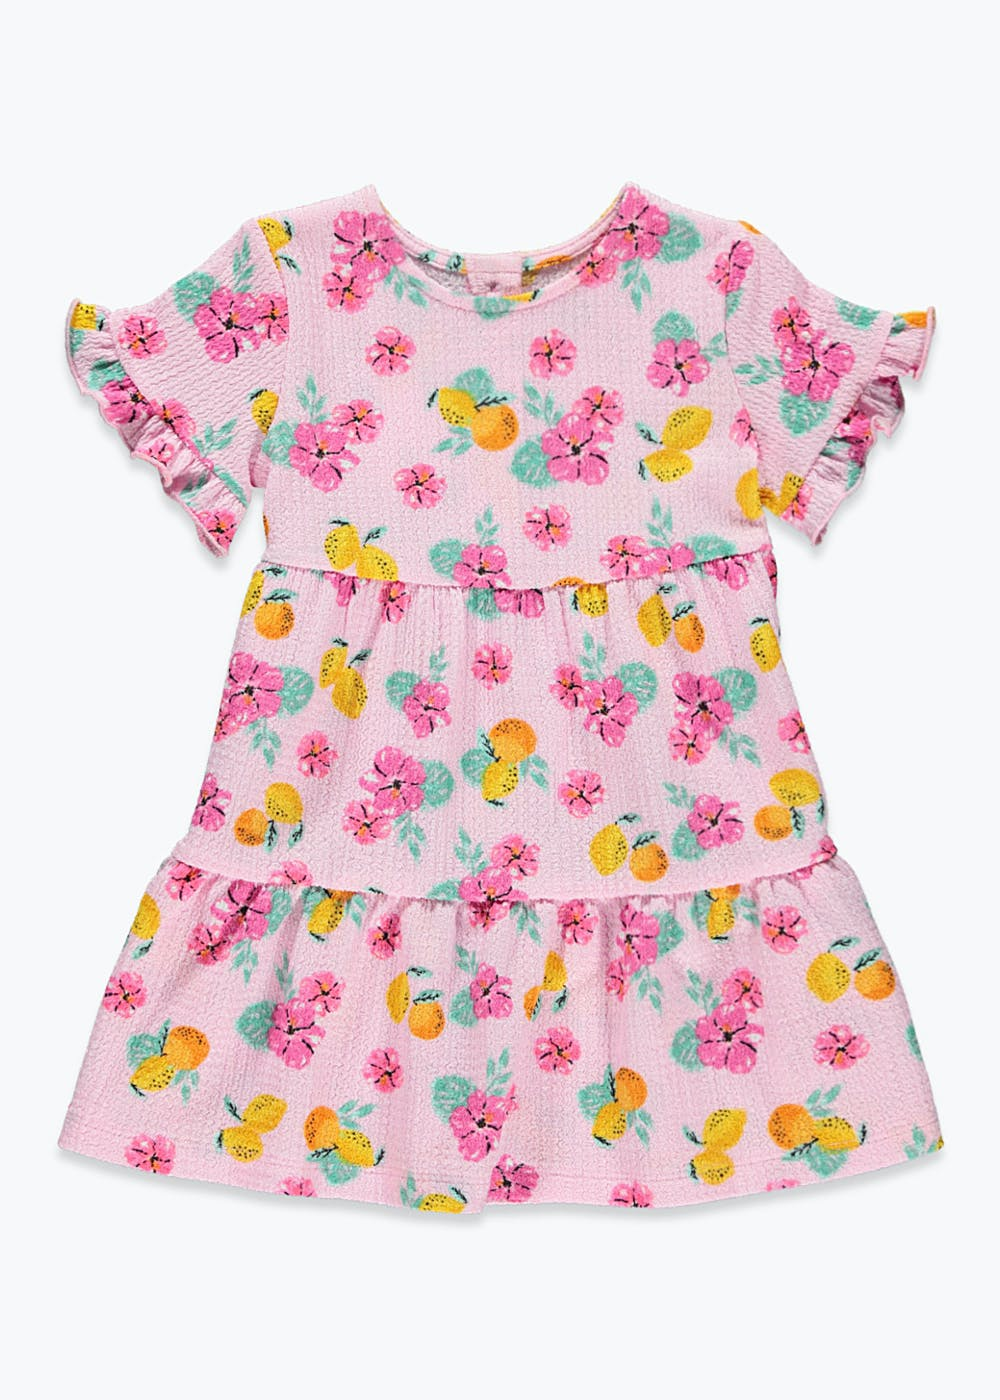 Girls Floral Tiered Crinkle Jersey Dress (9mths-6yrs) – Pink